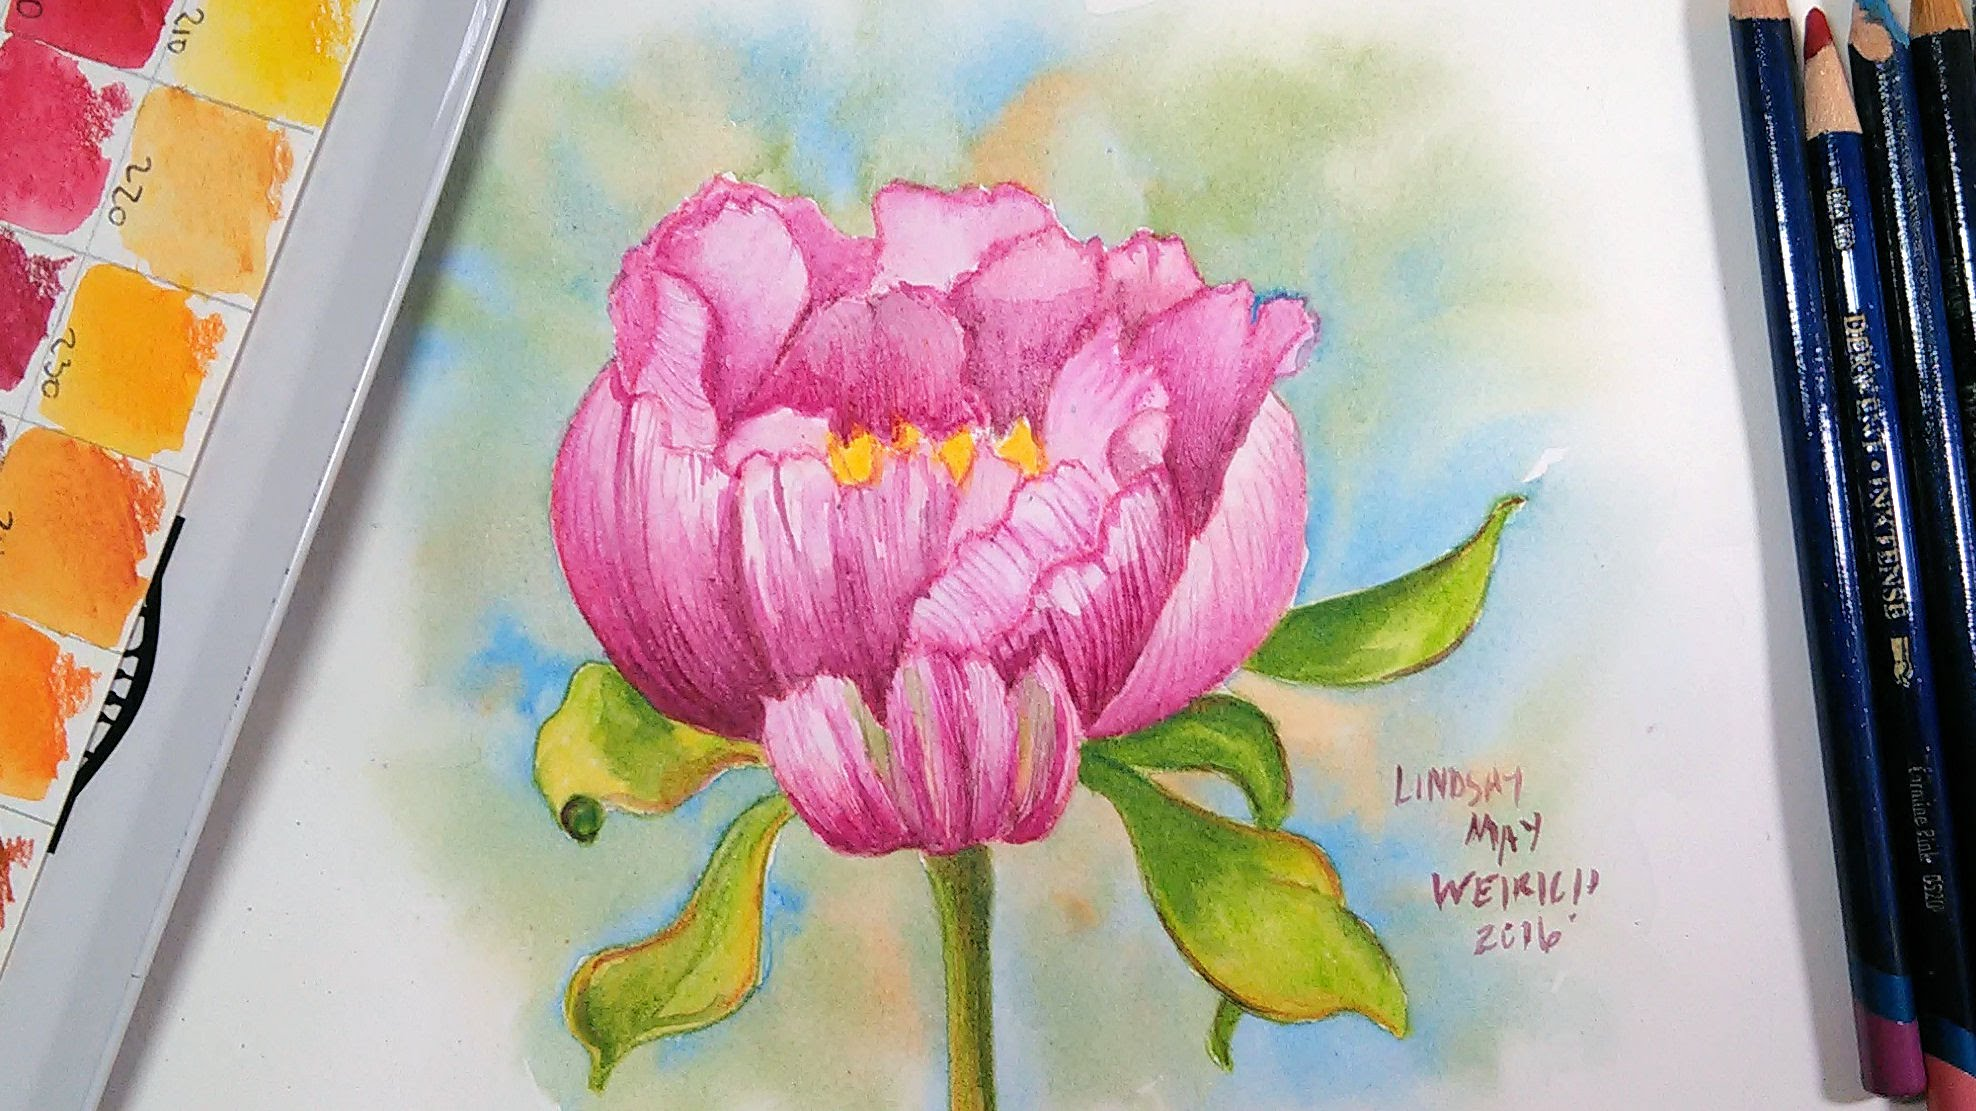 Drawn peony flower bucket Pencils LIVE: Paint a with